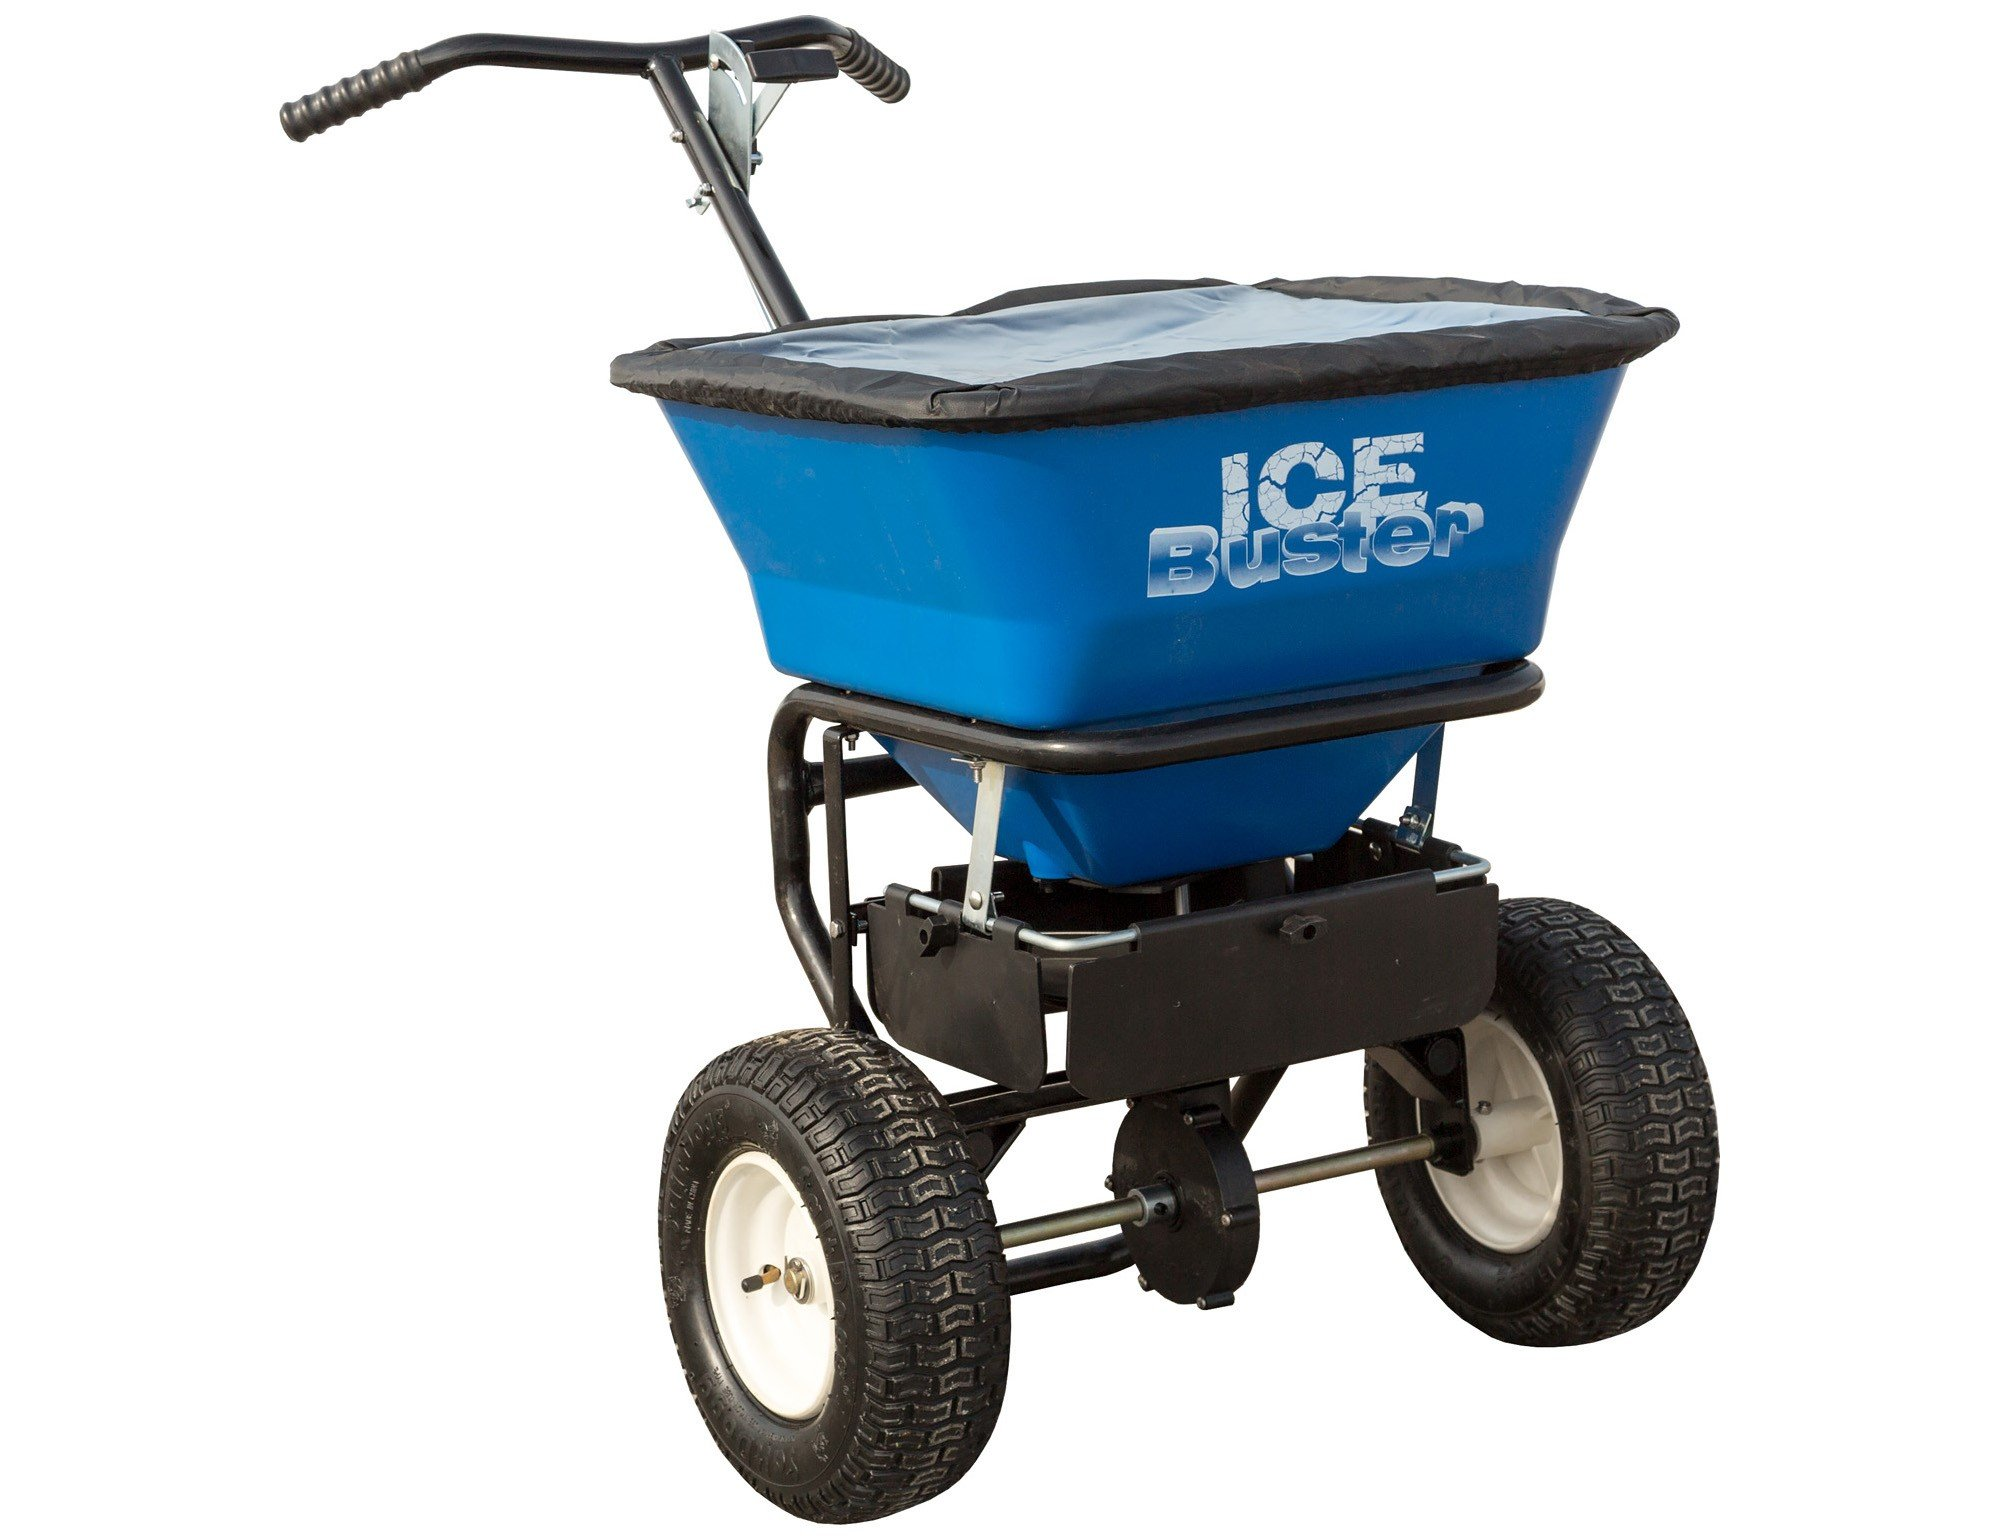 Buyers Products IB101G Professional 100 lb Capacity Walk Behind Broadcast Salt Spreader, Blue by Buyers Products